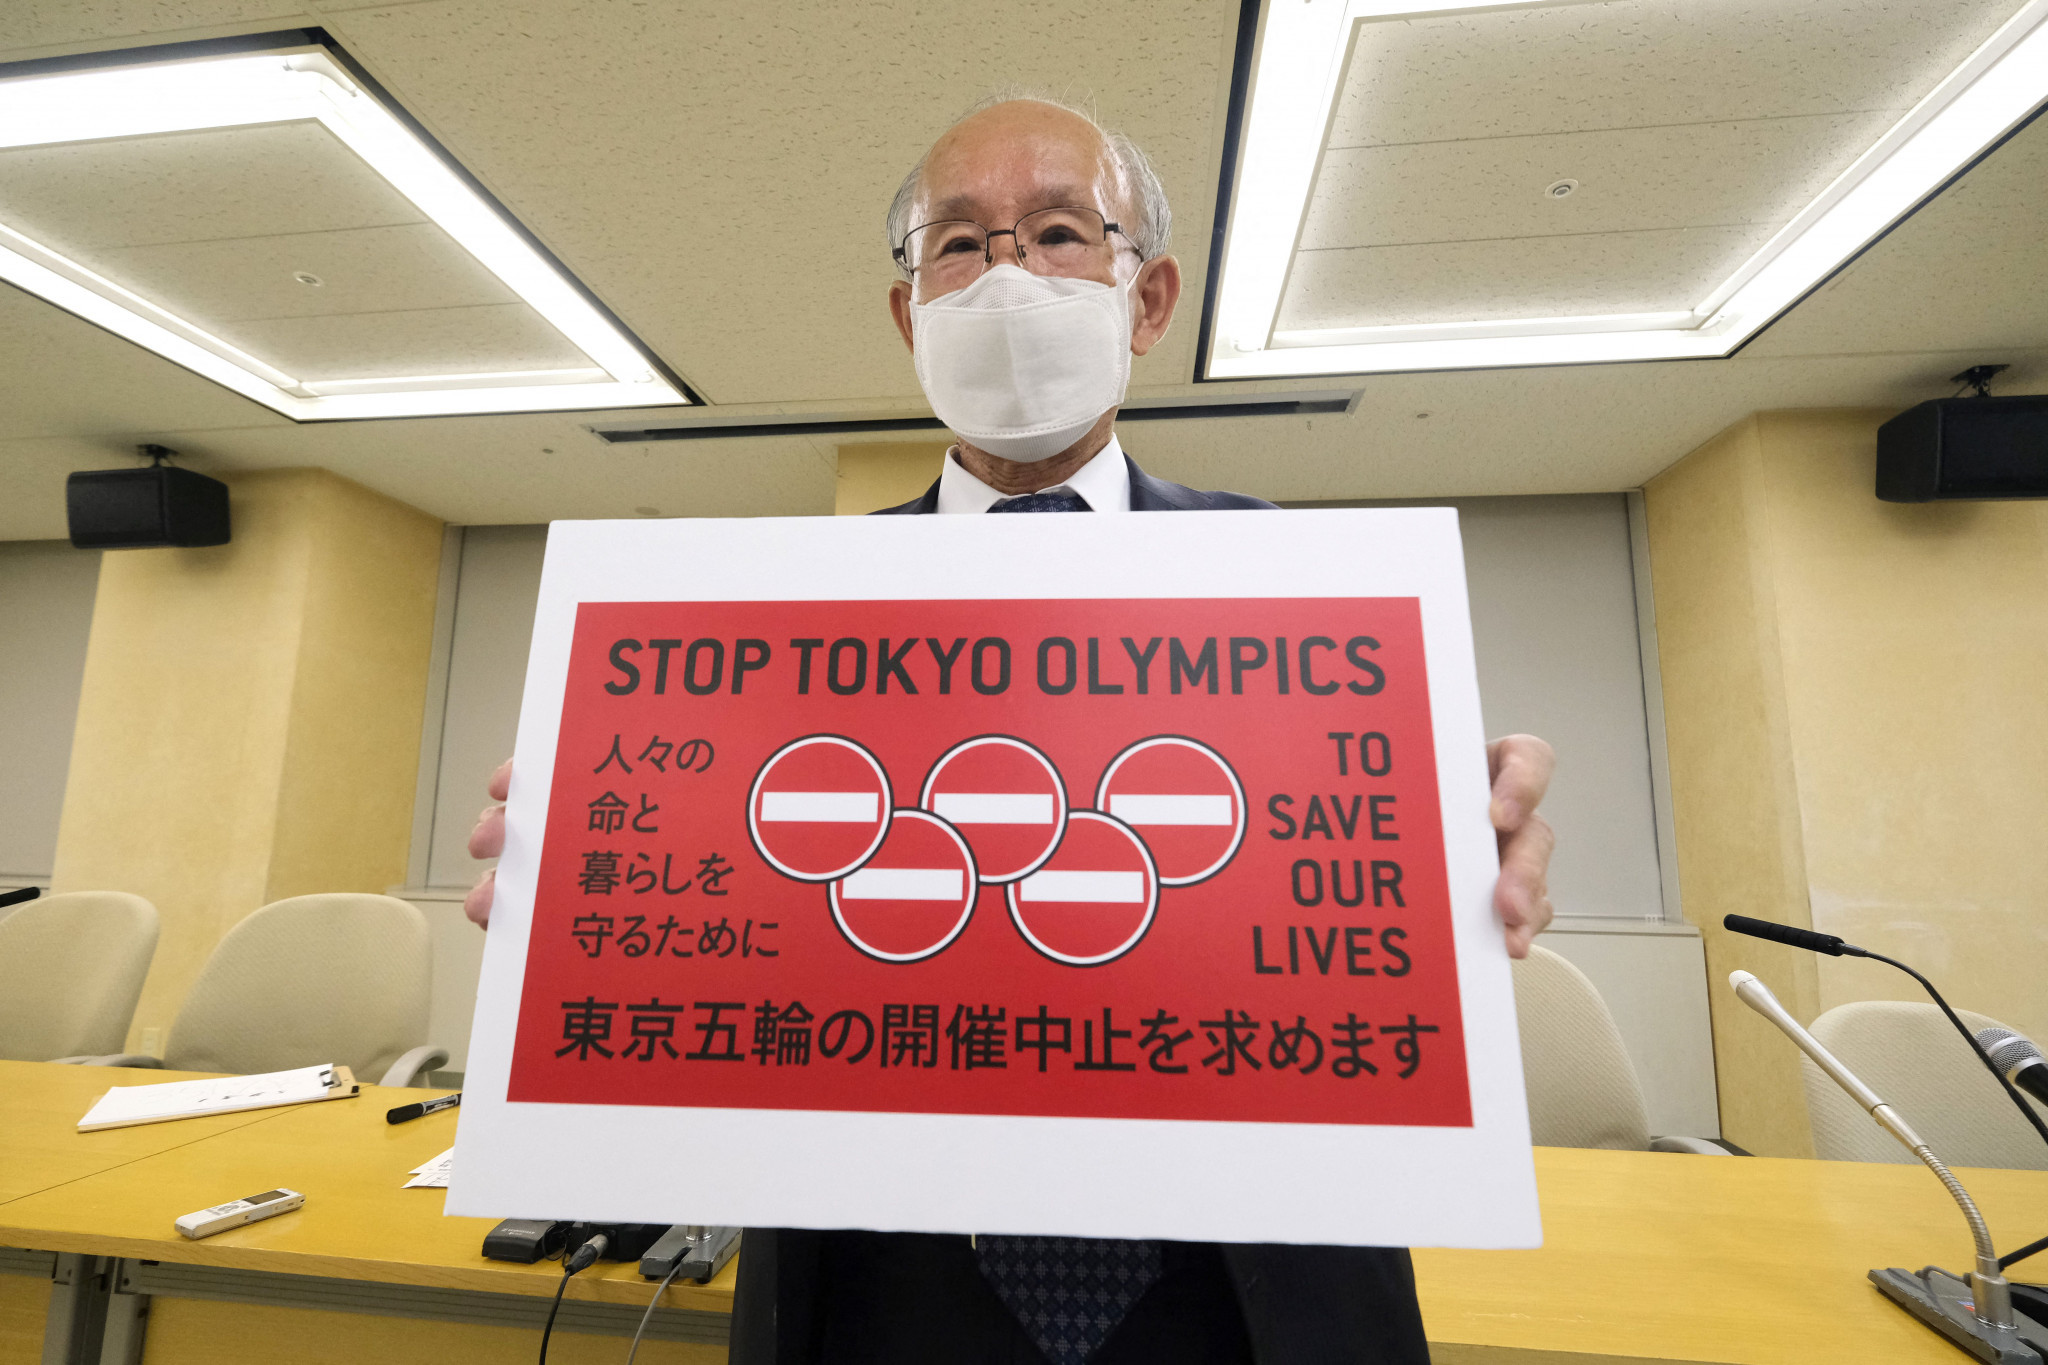 Petition to cancel Tokyo 2020 Olympics submitted with 350,000 signatures